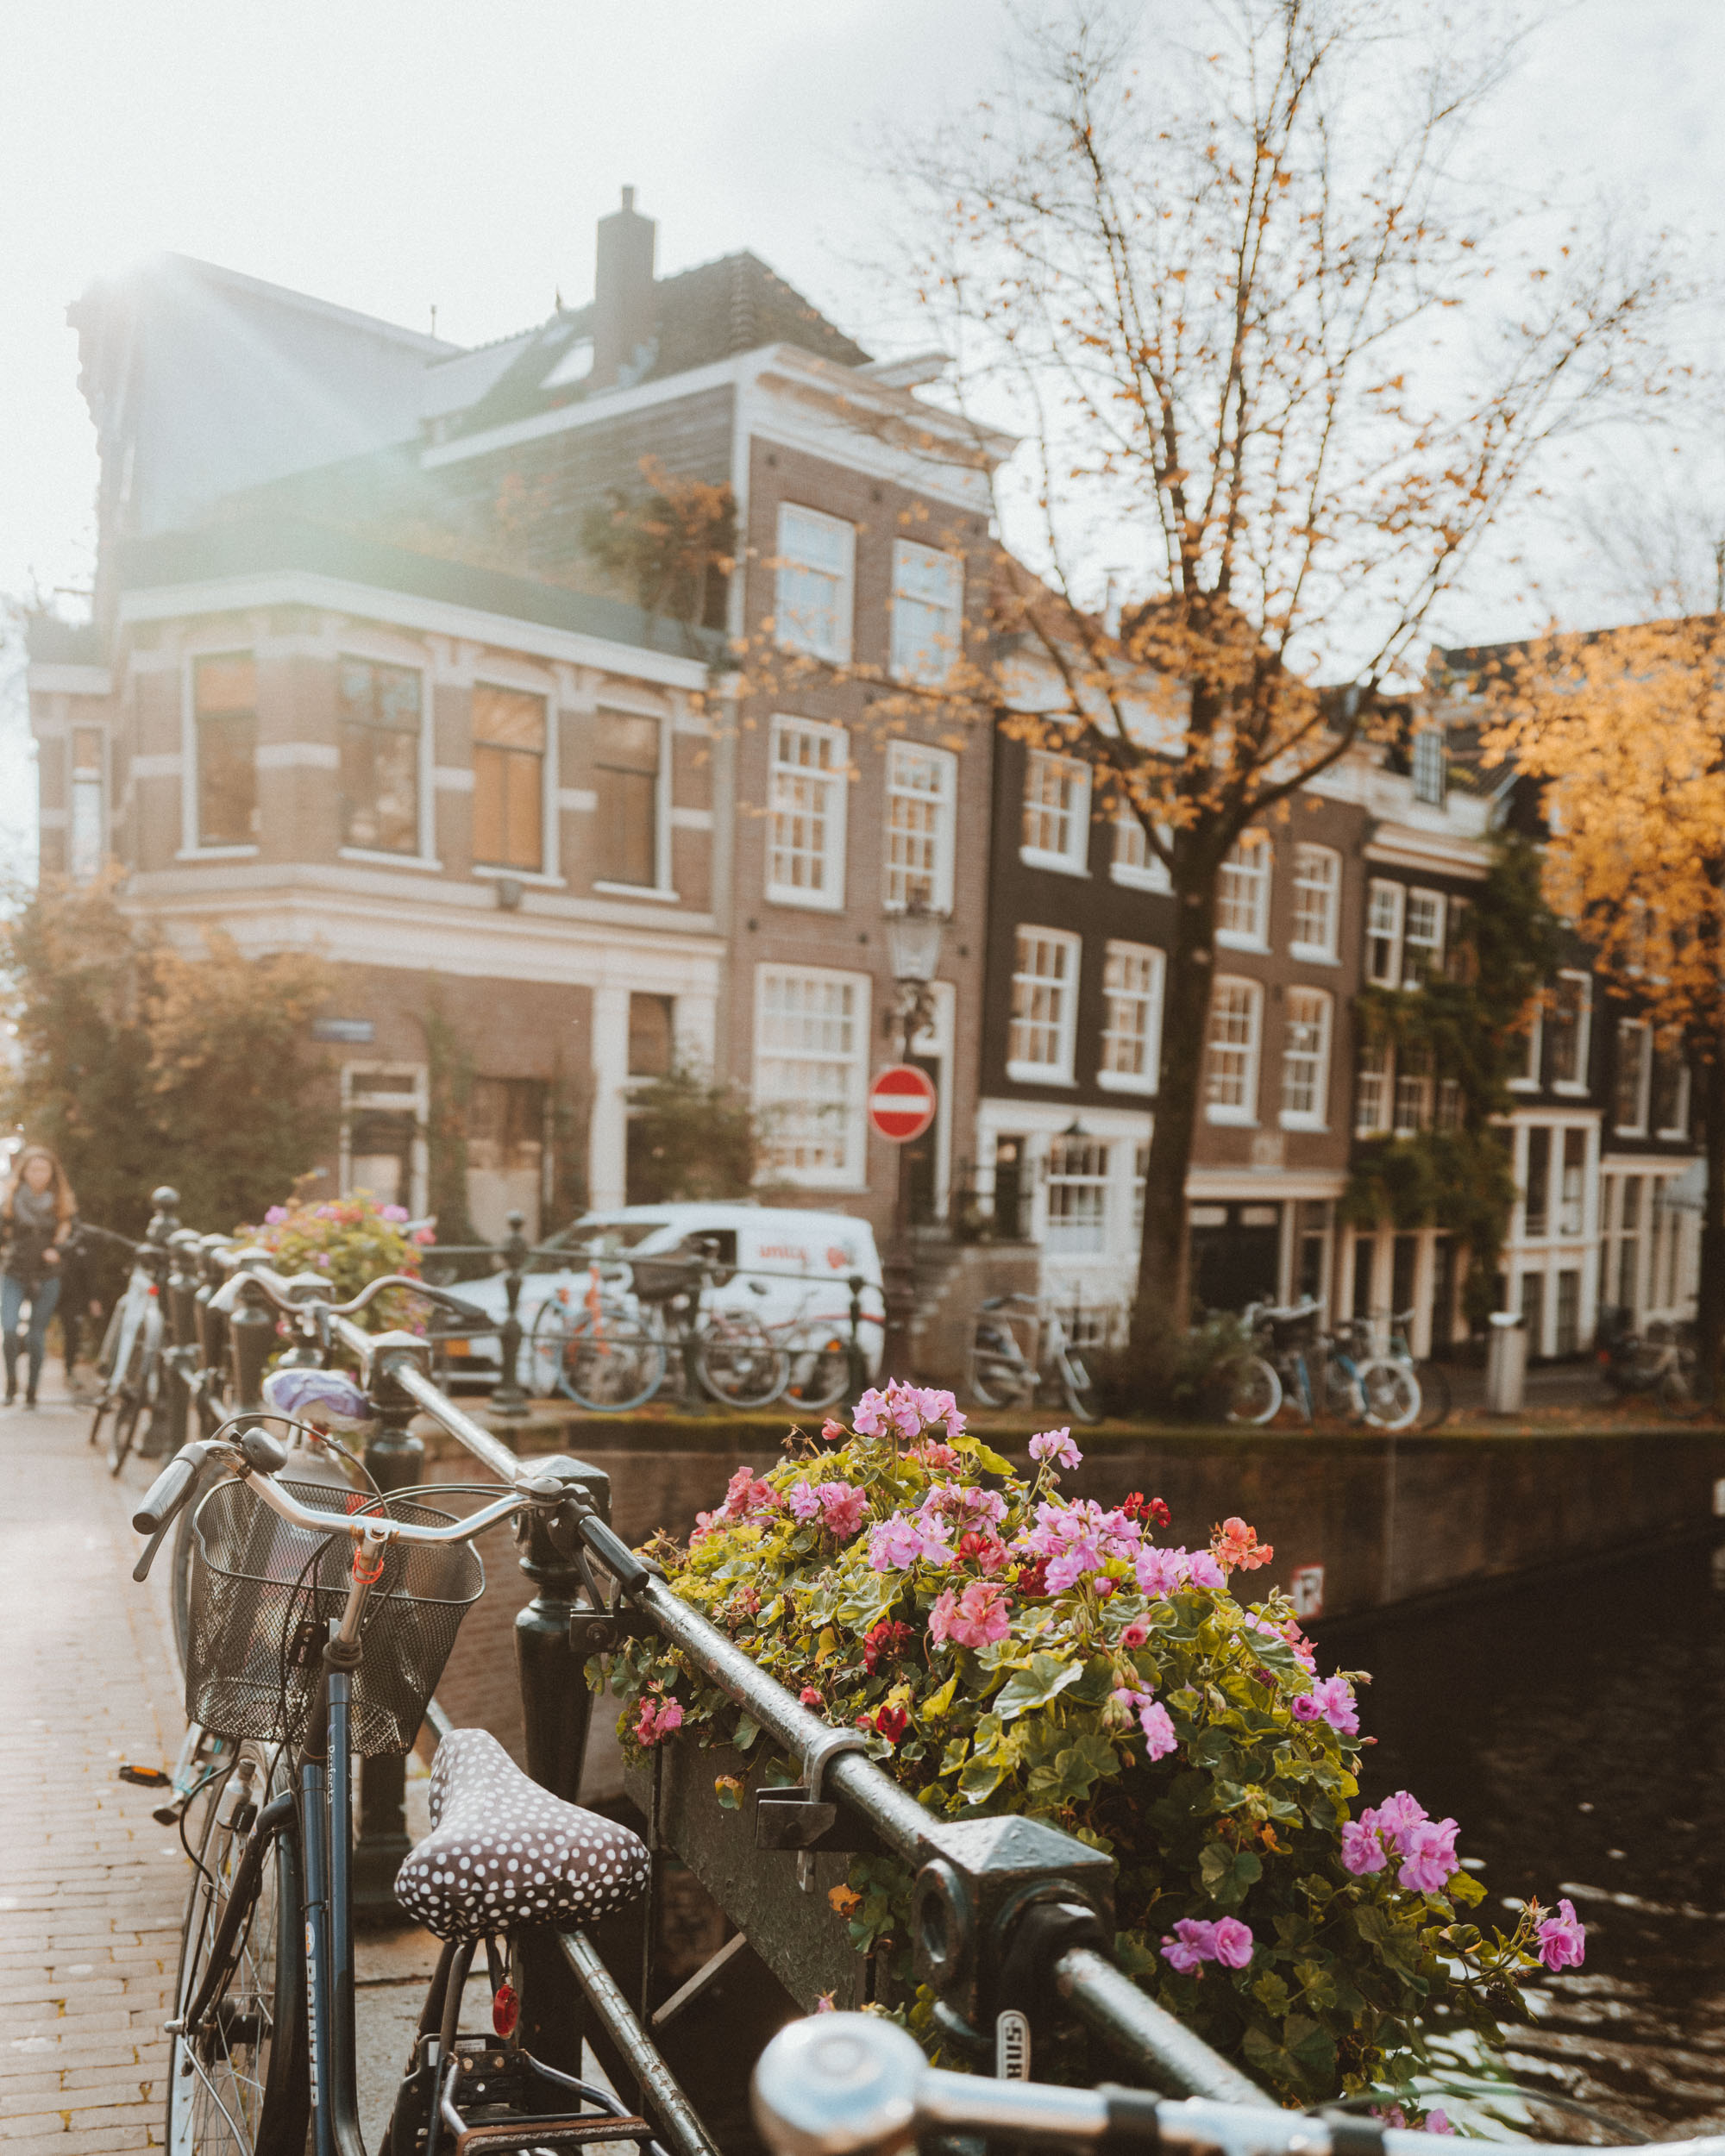 Amsterdam canals via @finduslost